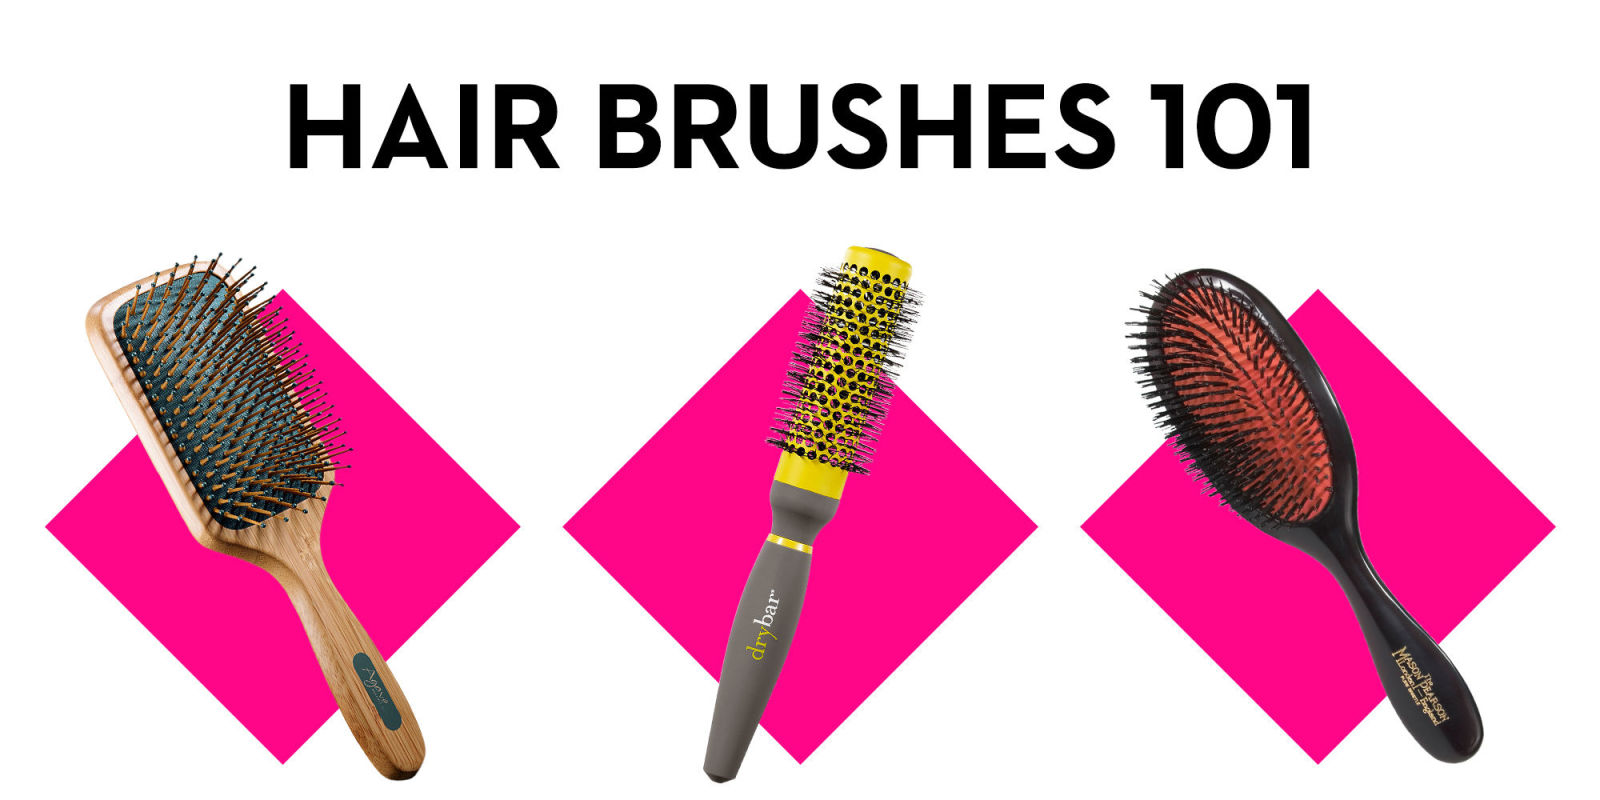 How to pick a hairbrush or comb a guide to different types of how to pick a hairbrush or comb a guide to different types of hairbrushes and combs urmus Choice Image